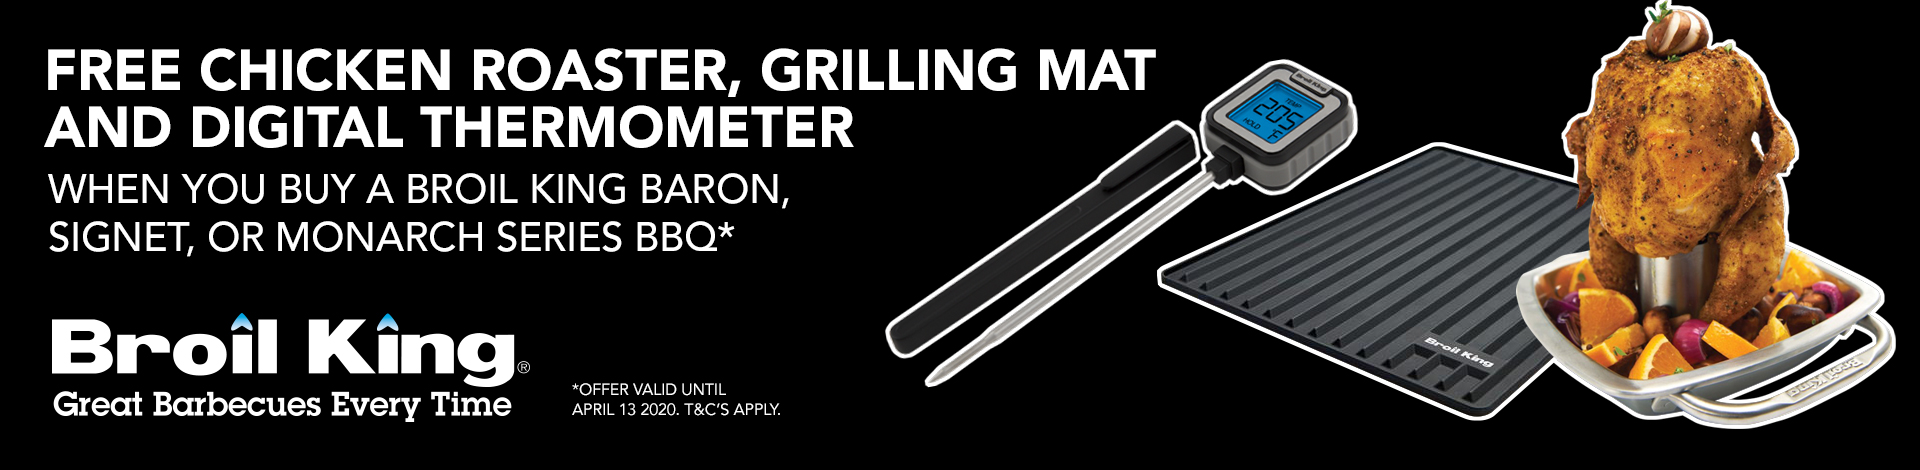 Broil King Free roaster, mat, digital thermo